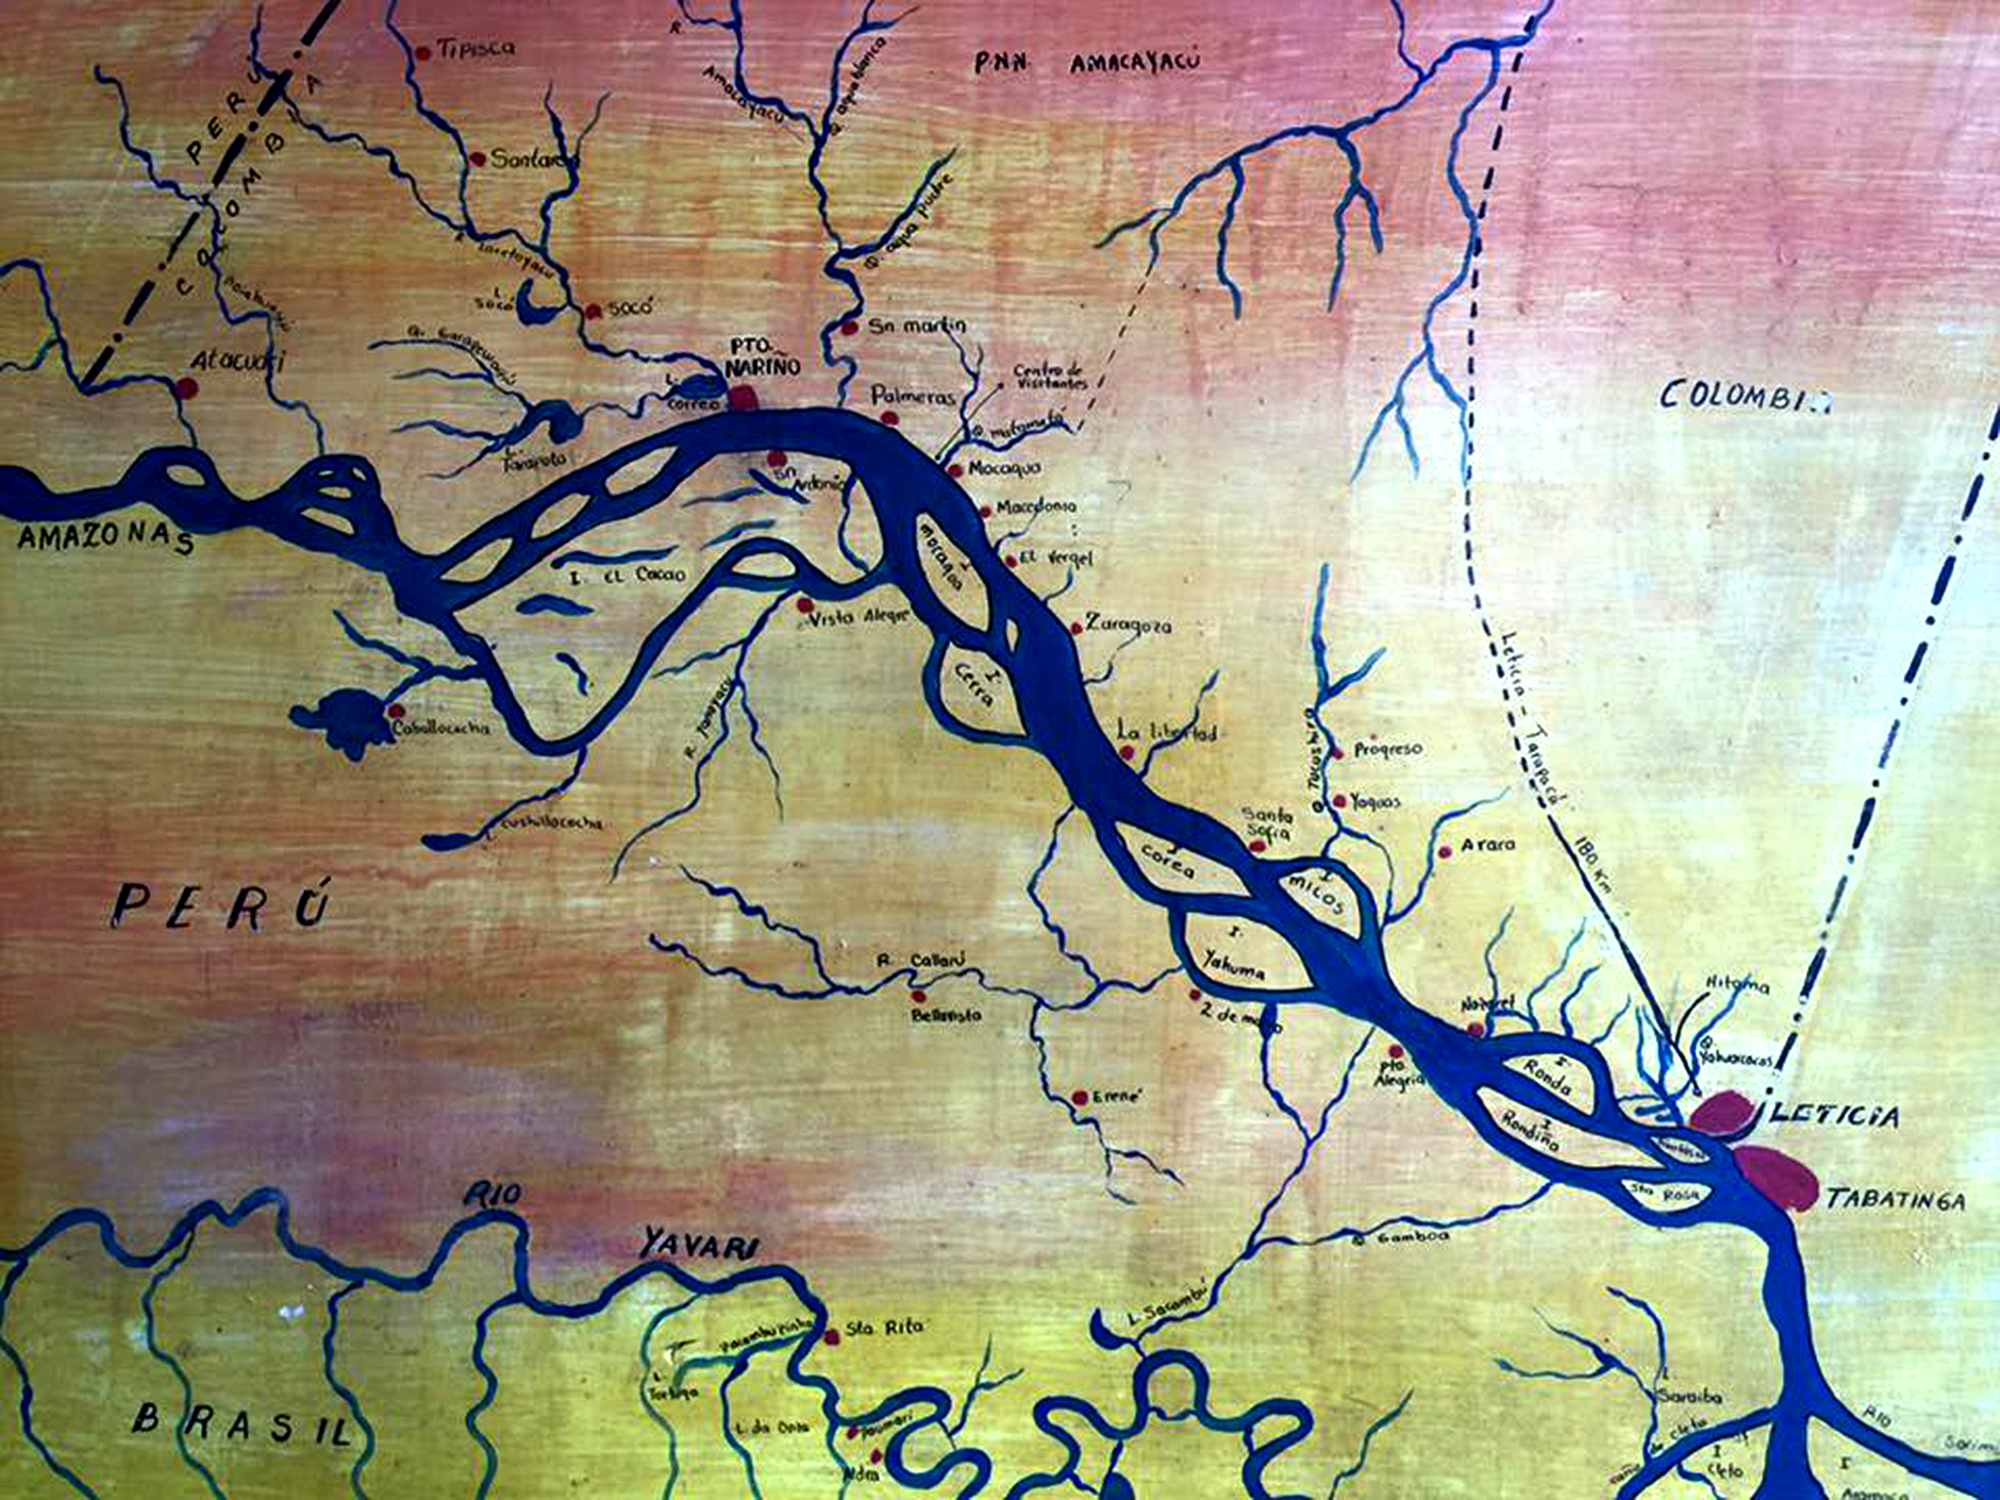 Sketched Map of part of the Amazon